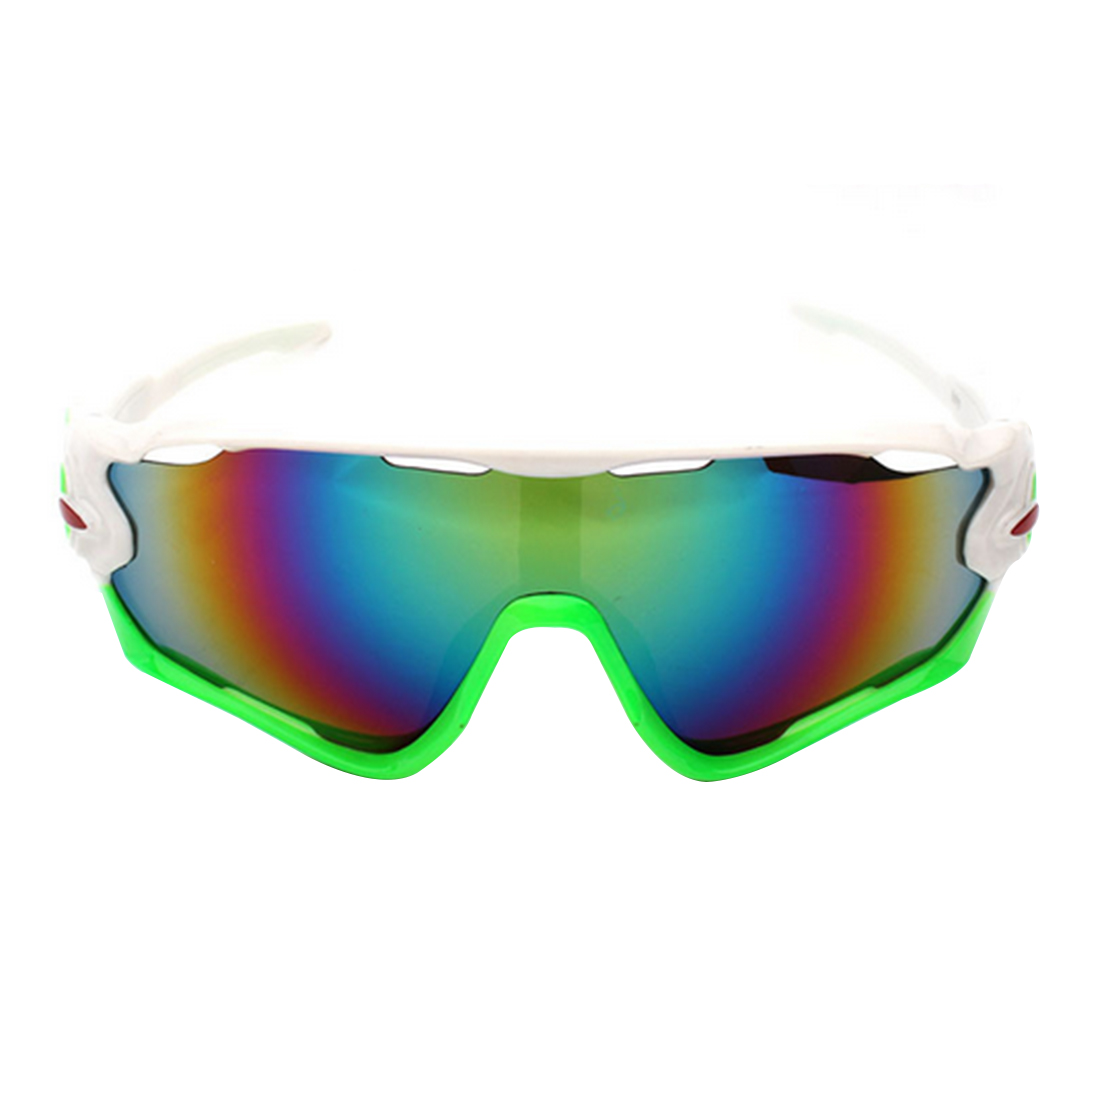 14 Color Night Vision Professional Fishing Glasses Outdoor Activities Goggle Skiing Cycling Wind Goggle Eyewear Hot Sale